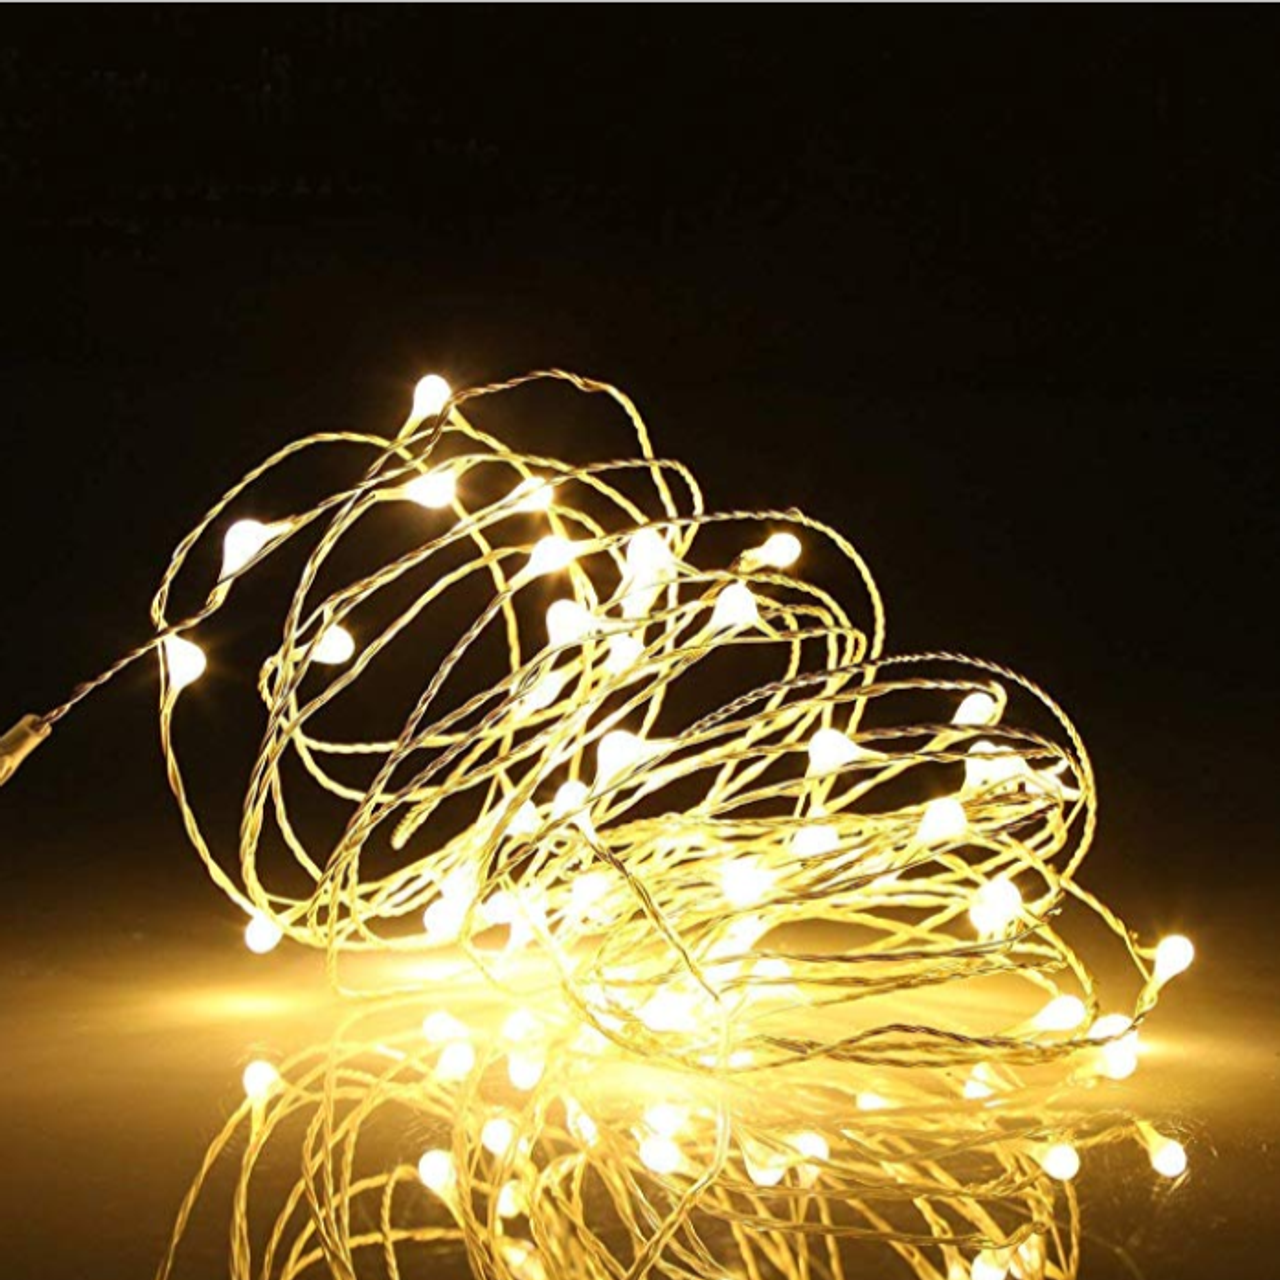 LED Fairy Lights 33 feet 100 LED LIGHTS- Dual power (Battery /USB) Warm White